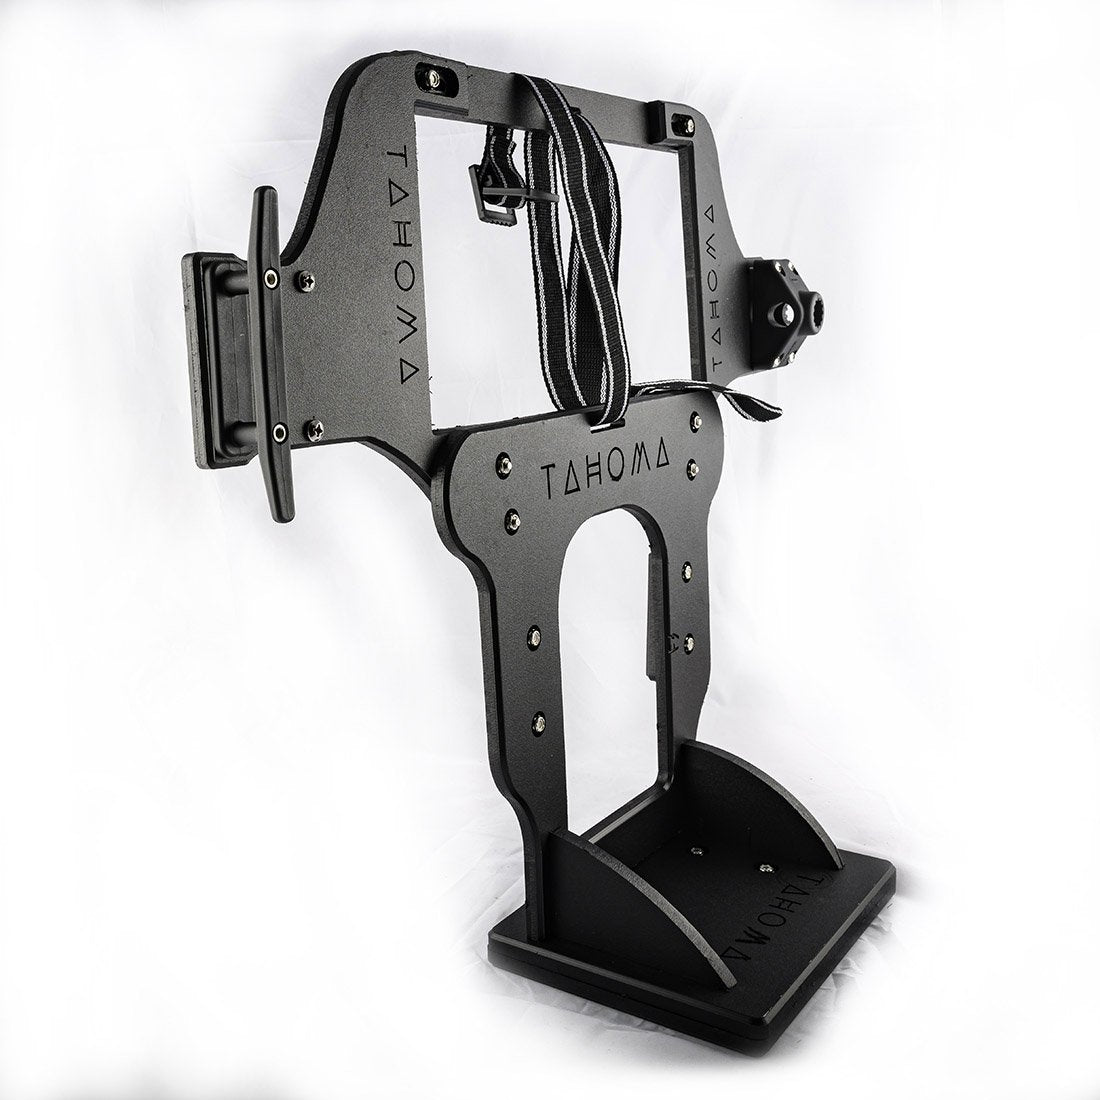 Trolling Motor Mount System for Tahoma Kayak All Around Standup Paddle Board Mounts 4theoutdoors America US USA SUP outdoors